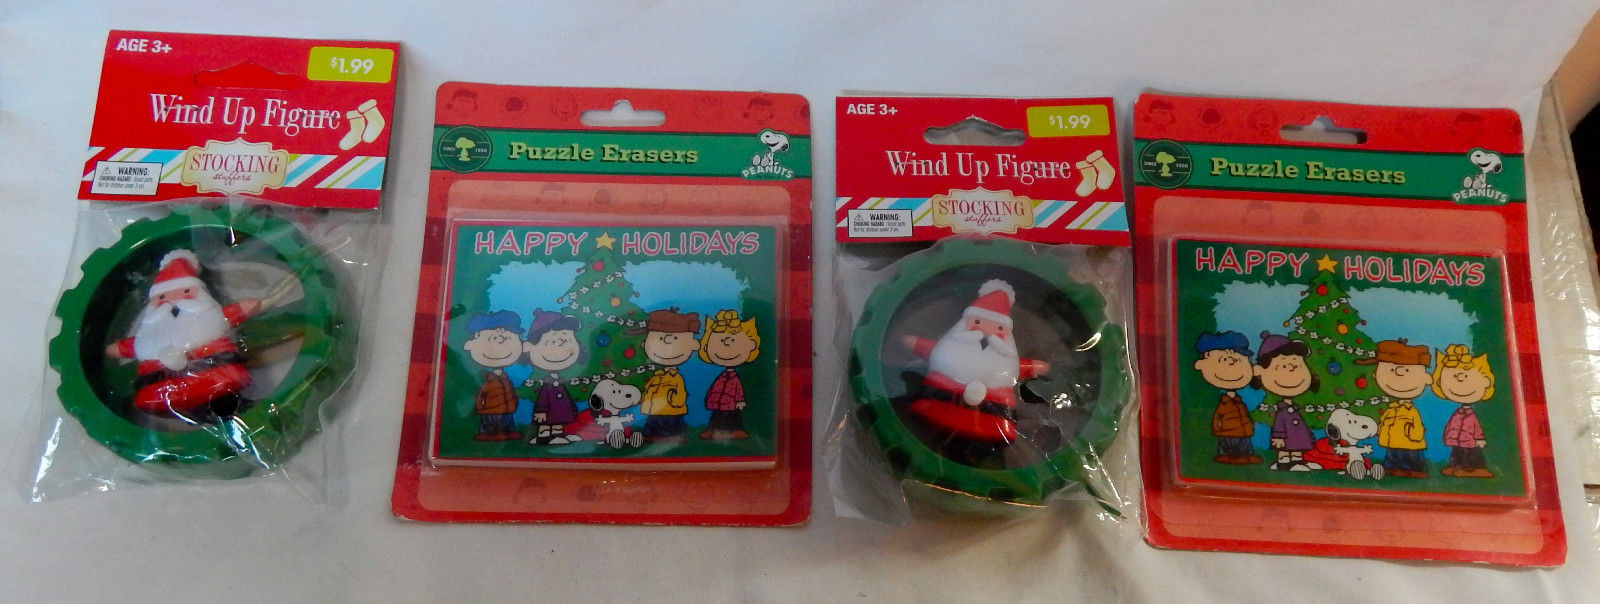 Christmas Holiday Peanuts Puzzle Erasers 2ea & Santa Wind Up Figures 2ea 3+ 27T